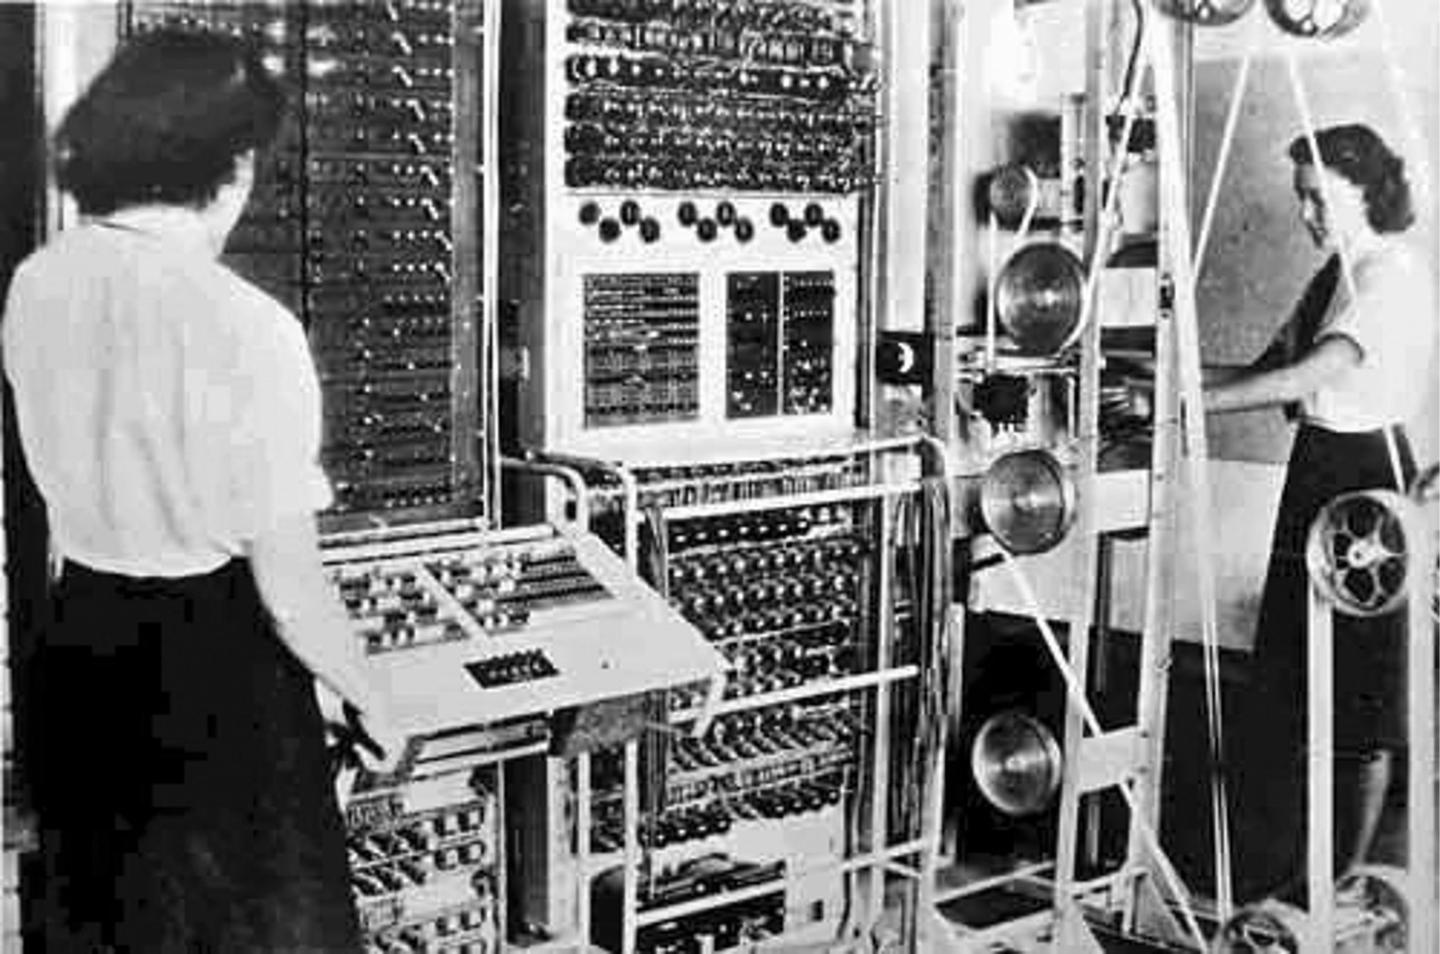 The Colossus Mark II was the second of 10 Colossus computers